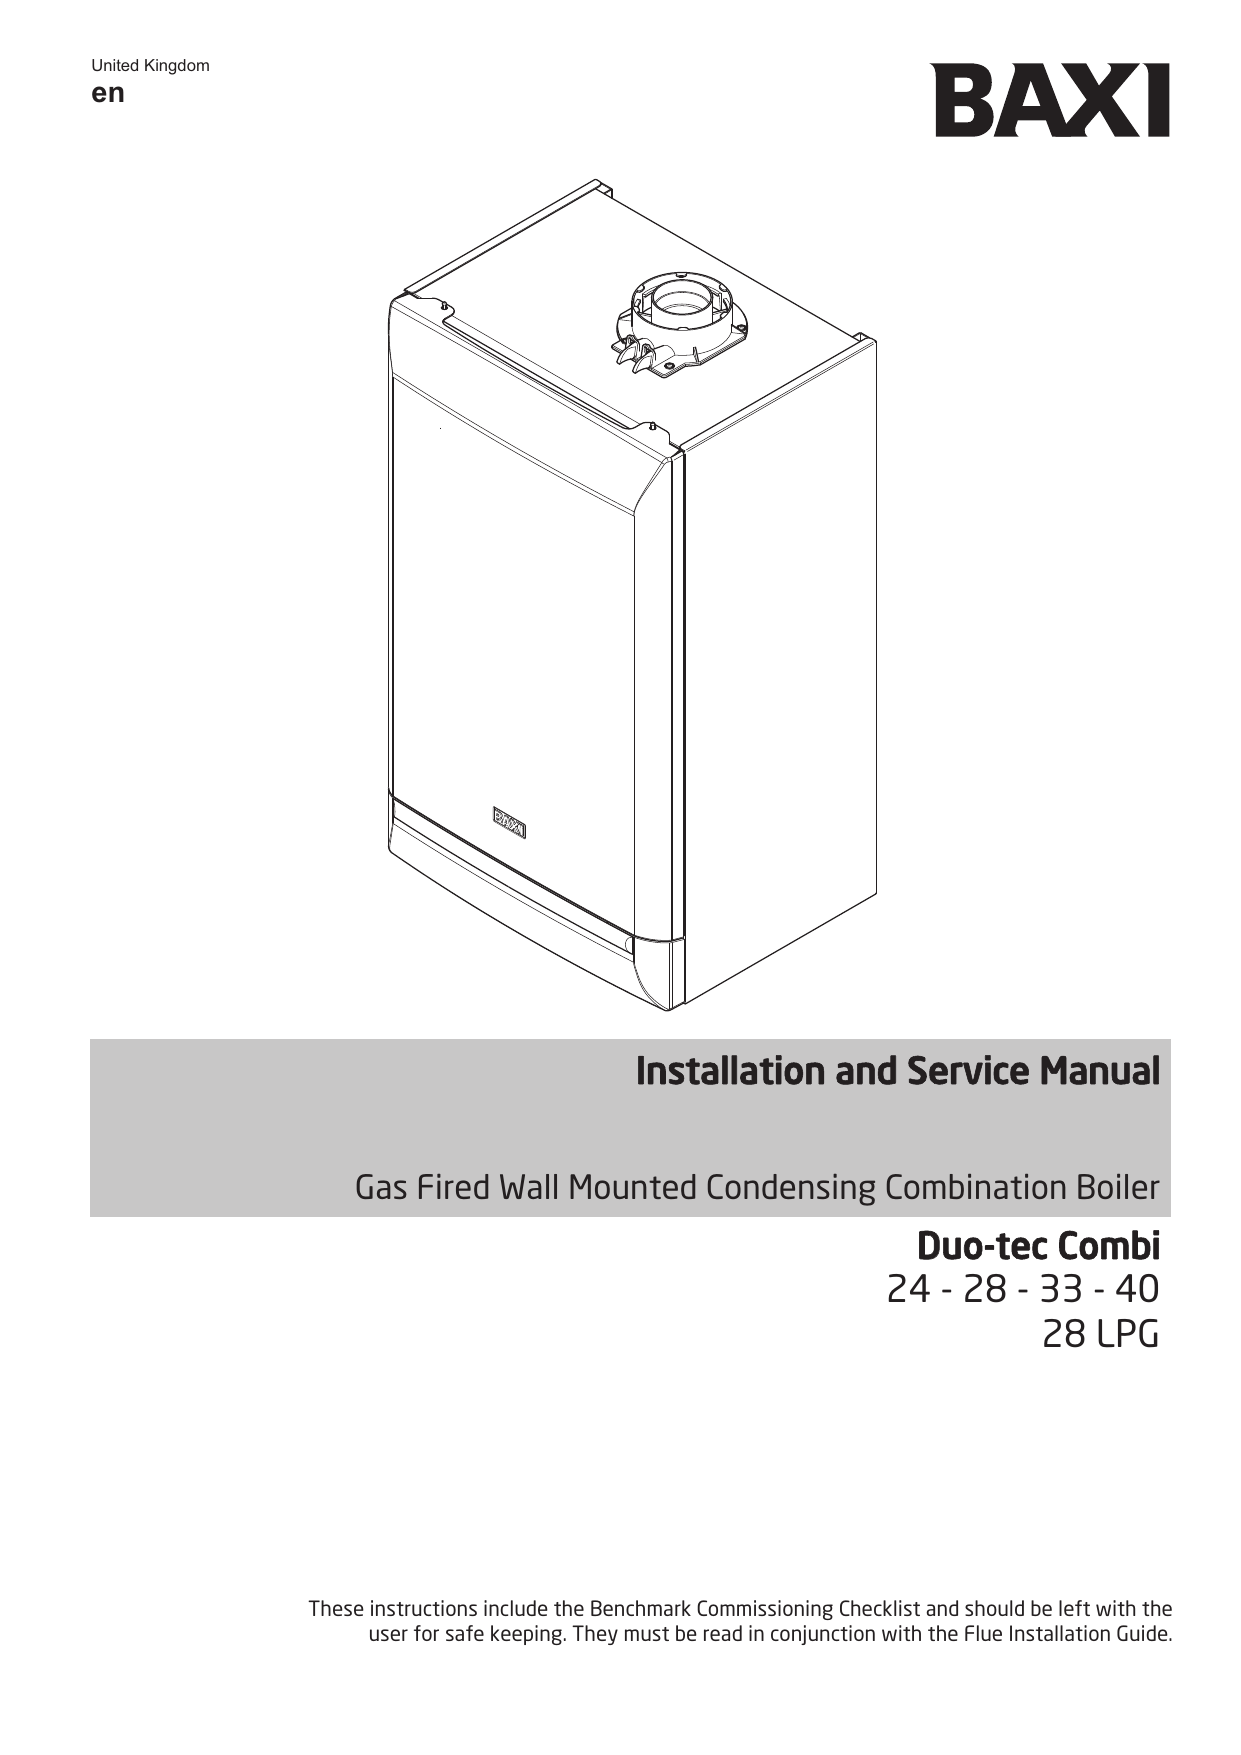 Baxi Duo-Tec Installation and Service Manual